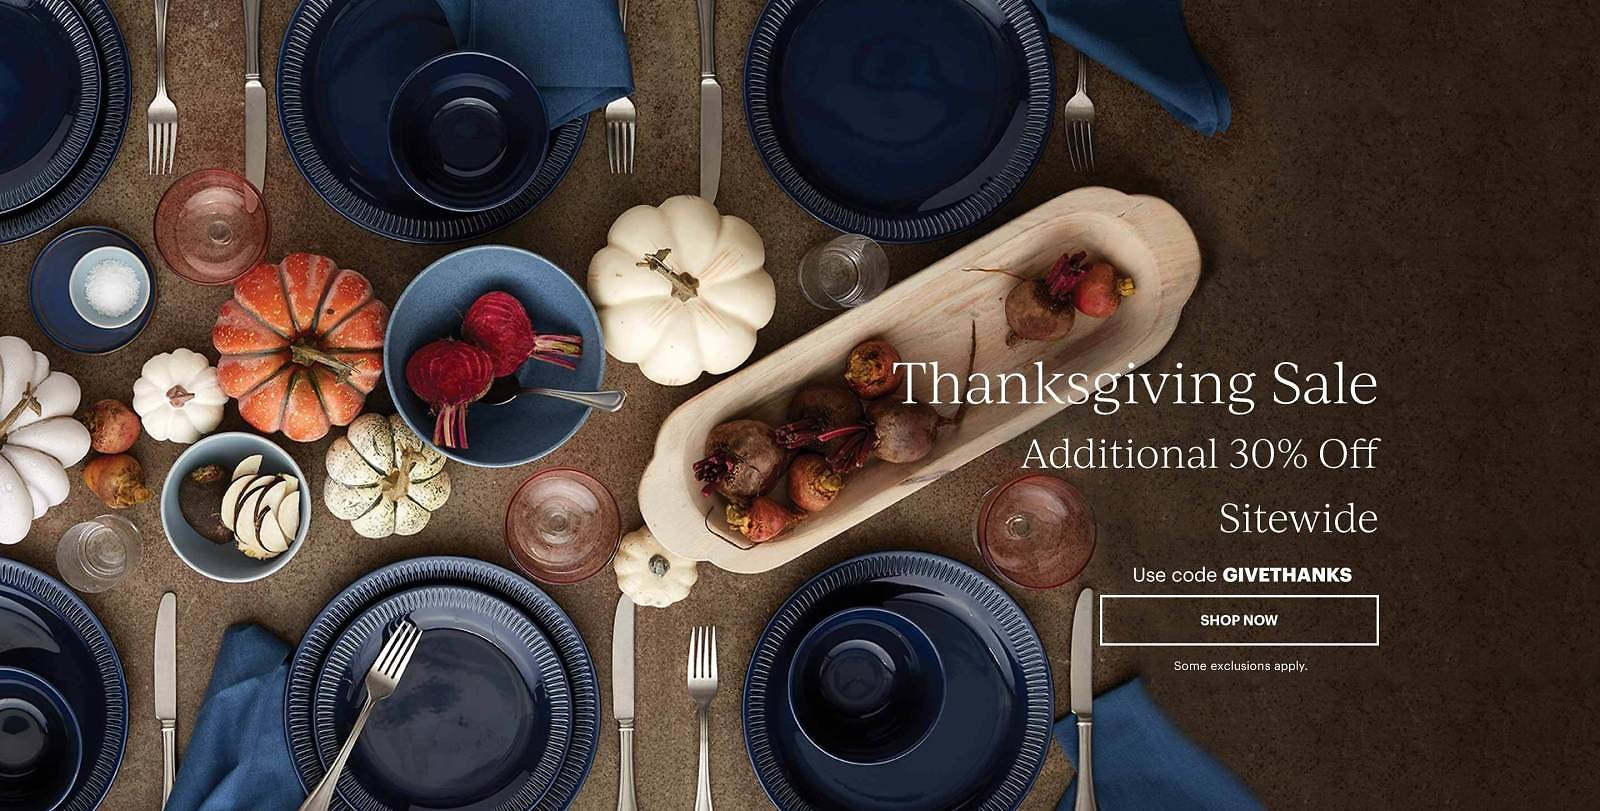 Up to 80% Off + Extra 30% Off Thanksgiving Sale